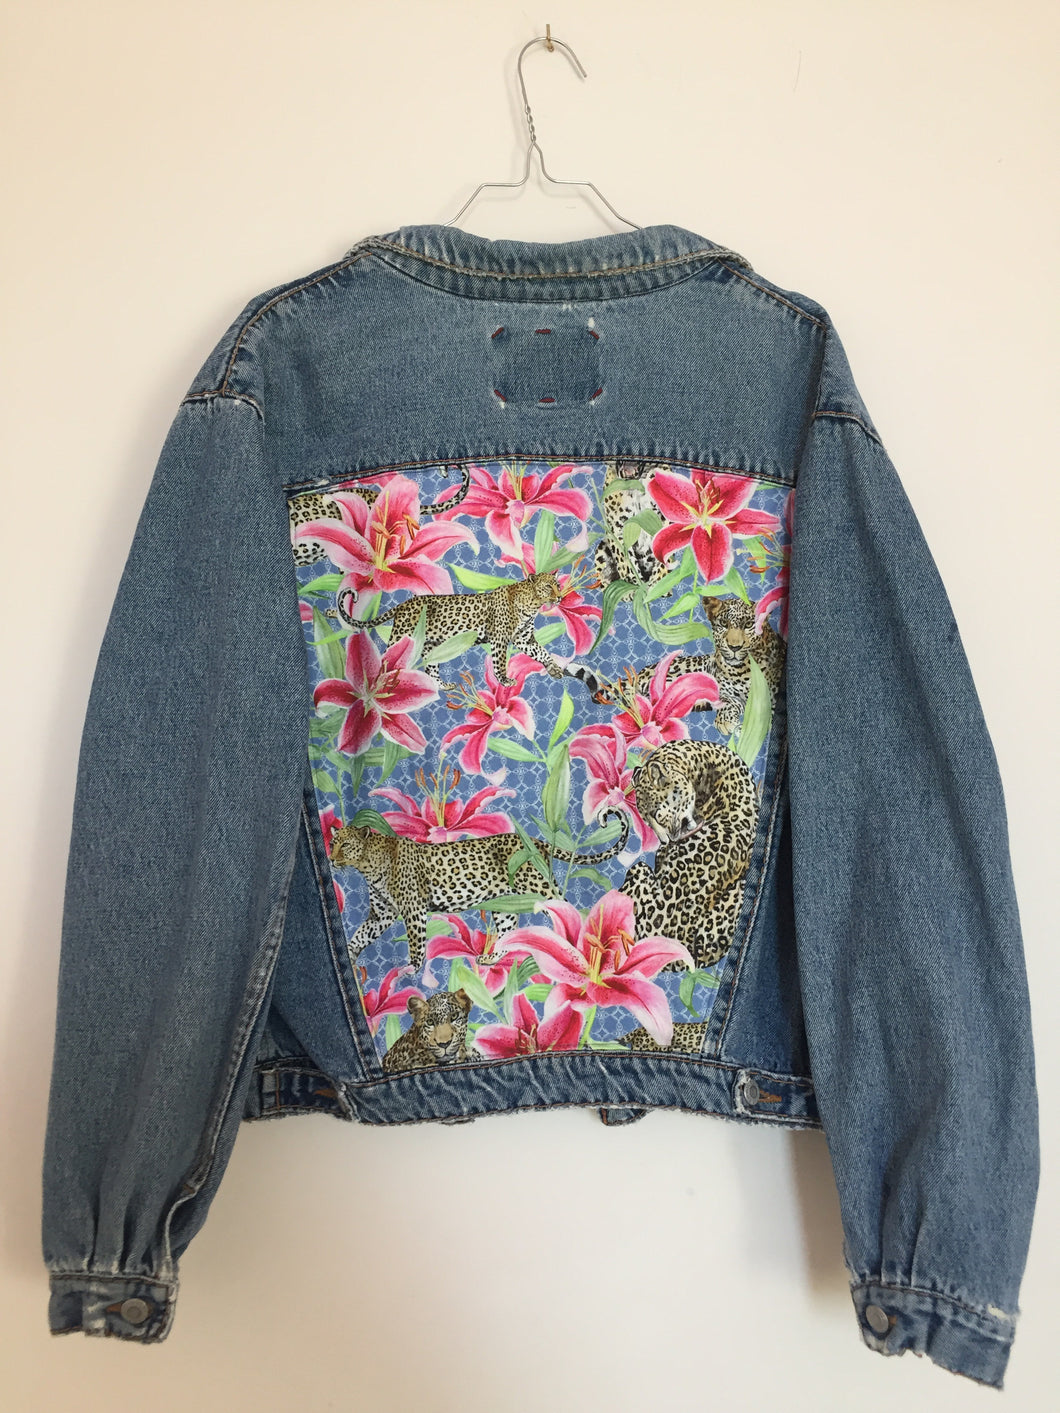 'Fiorucci' Denim jacket, Leopards and Lilies design